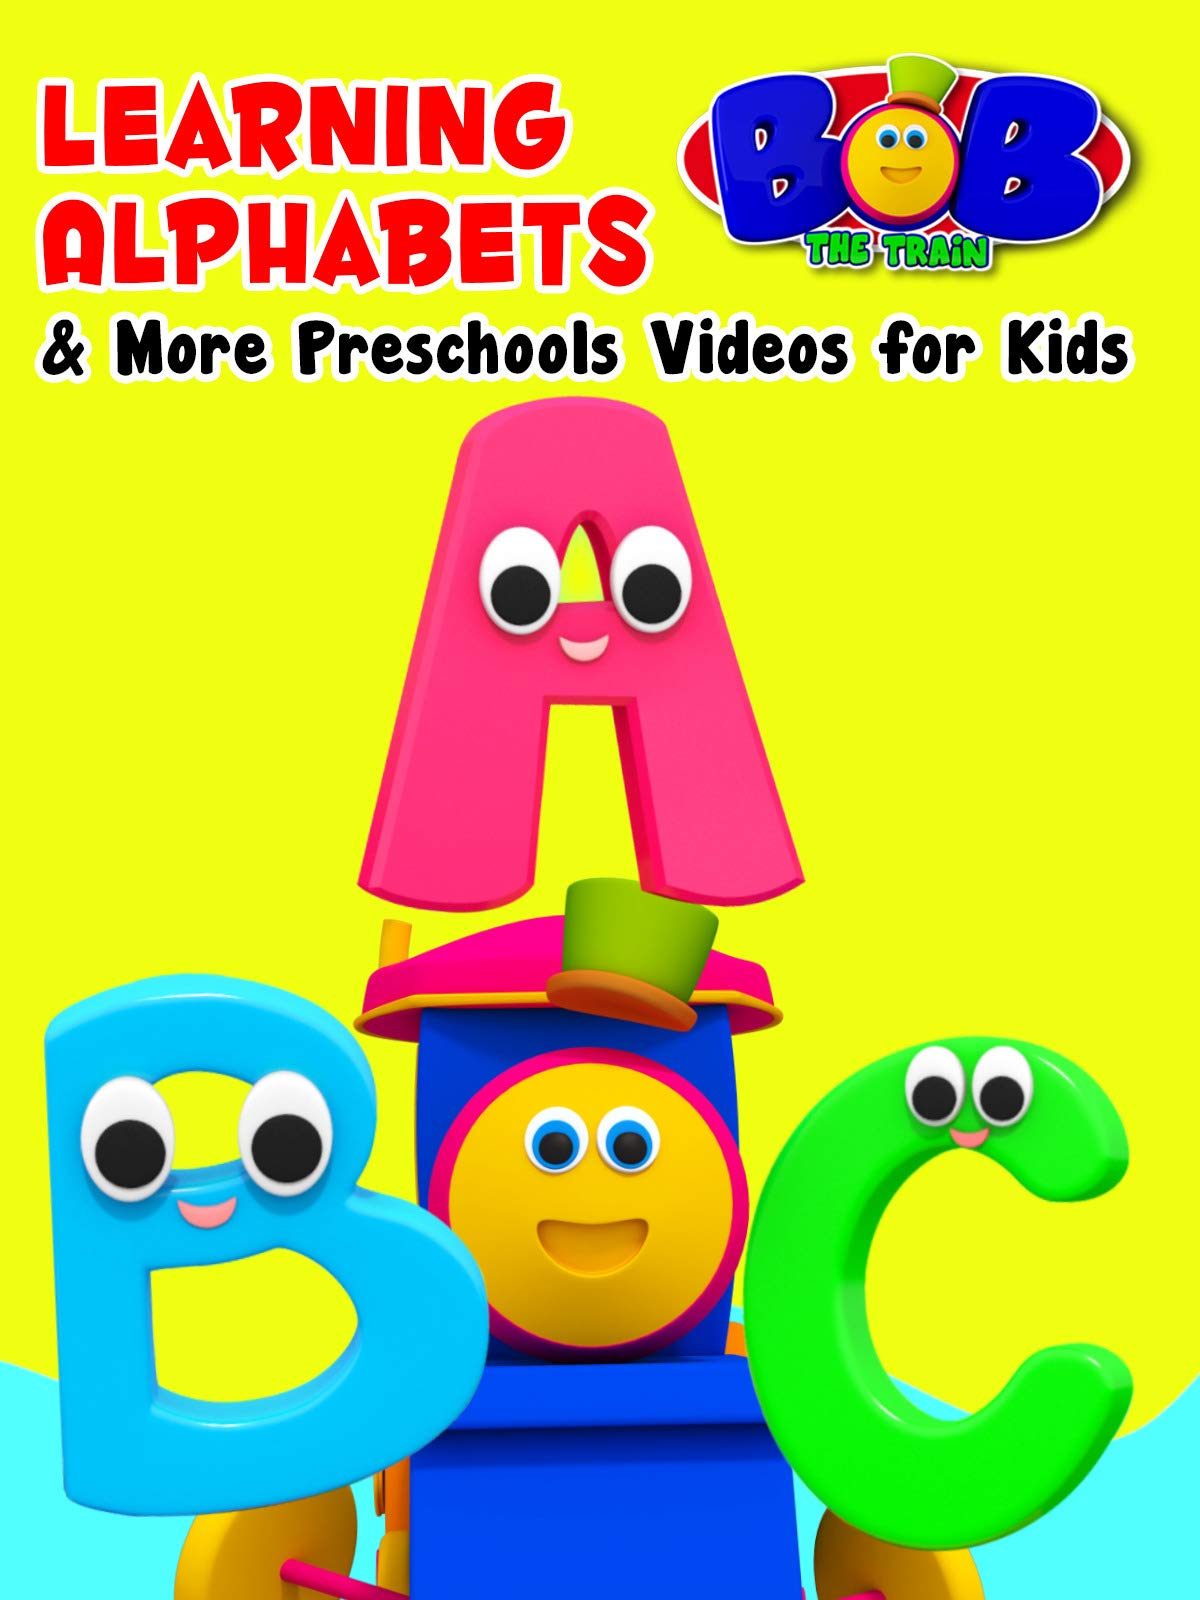 Bob the Train - Learning Alphabets & More Preschools Videos for Kids